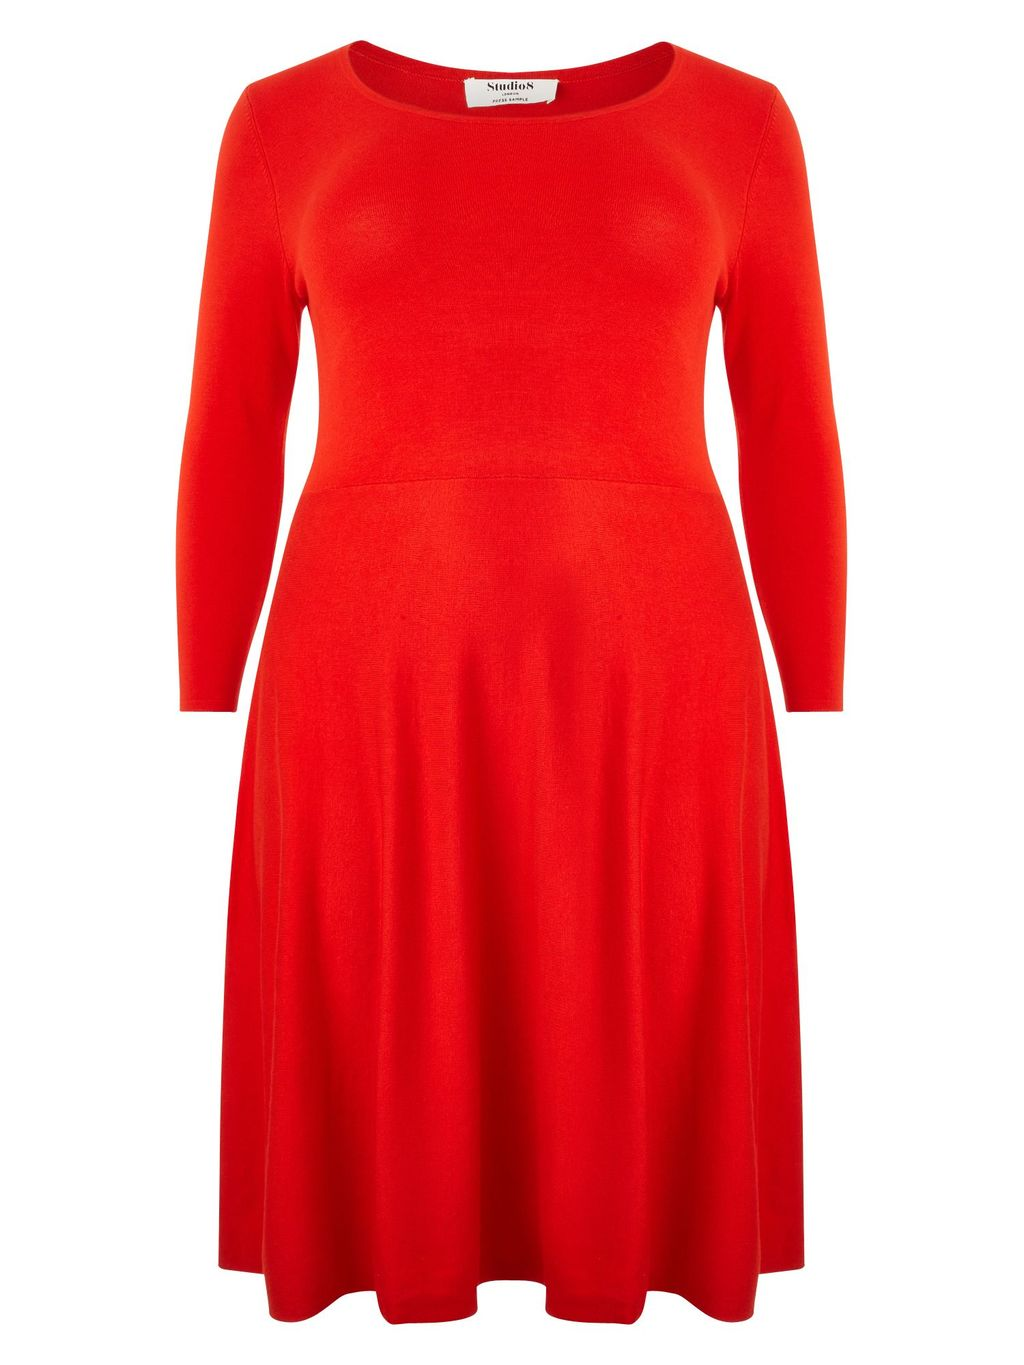 Camille Dress, Pink - style: jumper dress; neckline: round neck; pattern: plain; predominant colour: true red; occasions: casual; length: just above the knee; fit: body skimming; fibres: viscose/rayon - stretch; sleeve length: 3/4 length; sleeve style: standard; pattern type: fabric; texture group: jersey - stretchy/drapey; season: a/w 2015